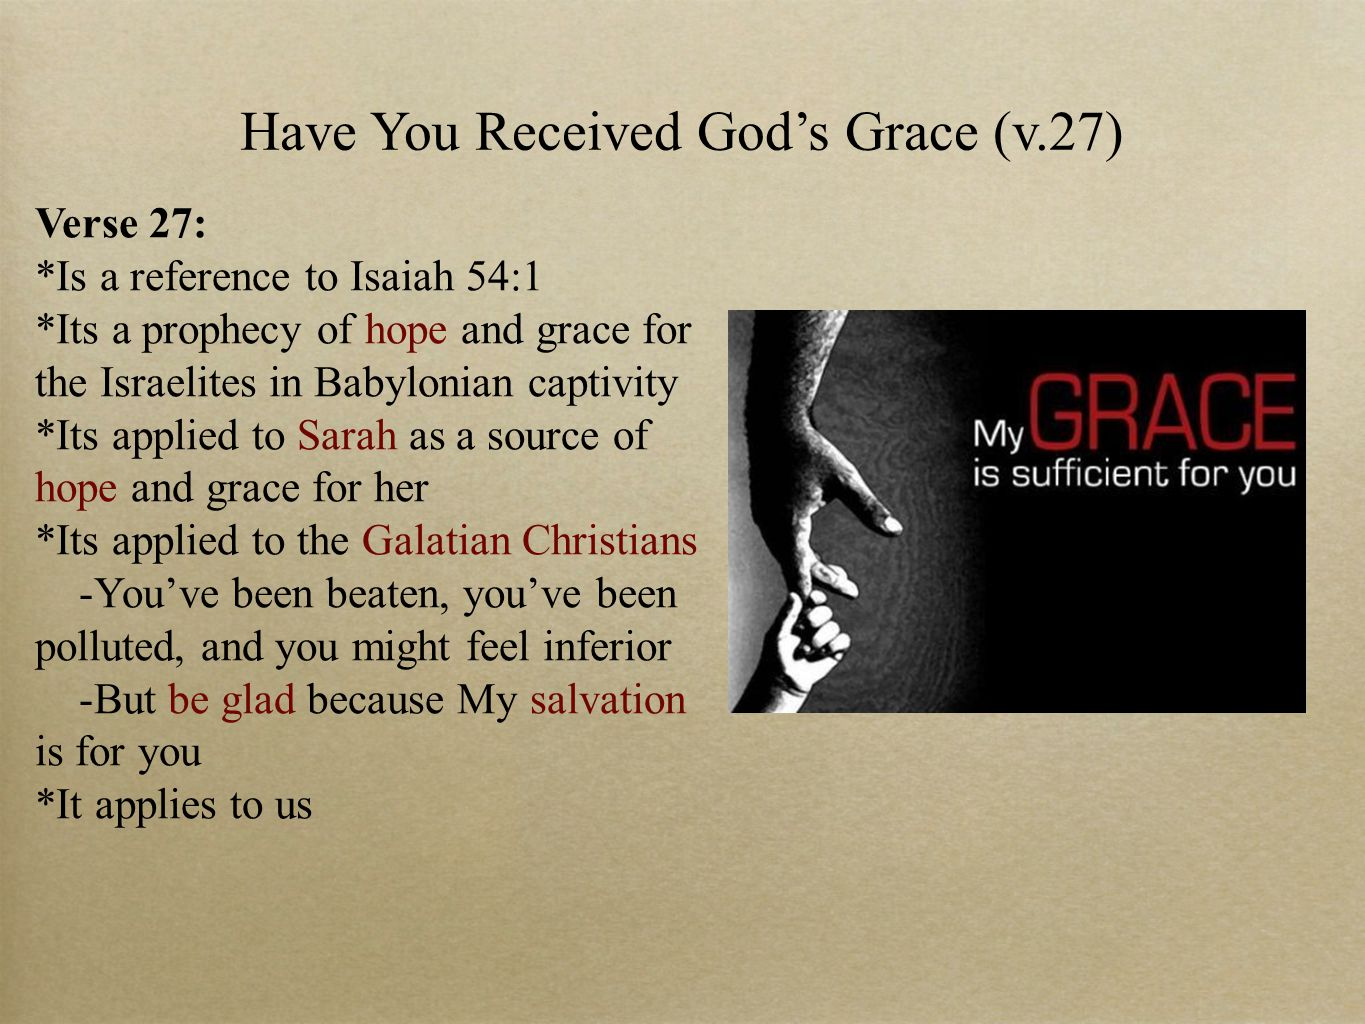 Have You Received God's Grace (v.27) Verse 27: *Is a reference to Isaiah 54:1 *Its a prophecy of hope and grace for the Israelites in Babylonian captivity *Its applied to Sarah as a source of hope and grace for her *Its applied to the Galatian Christians -You've been beaten, you've been polluted, and you might feel inferior -But be glad because My salvation is for you *It applies to us